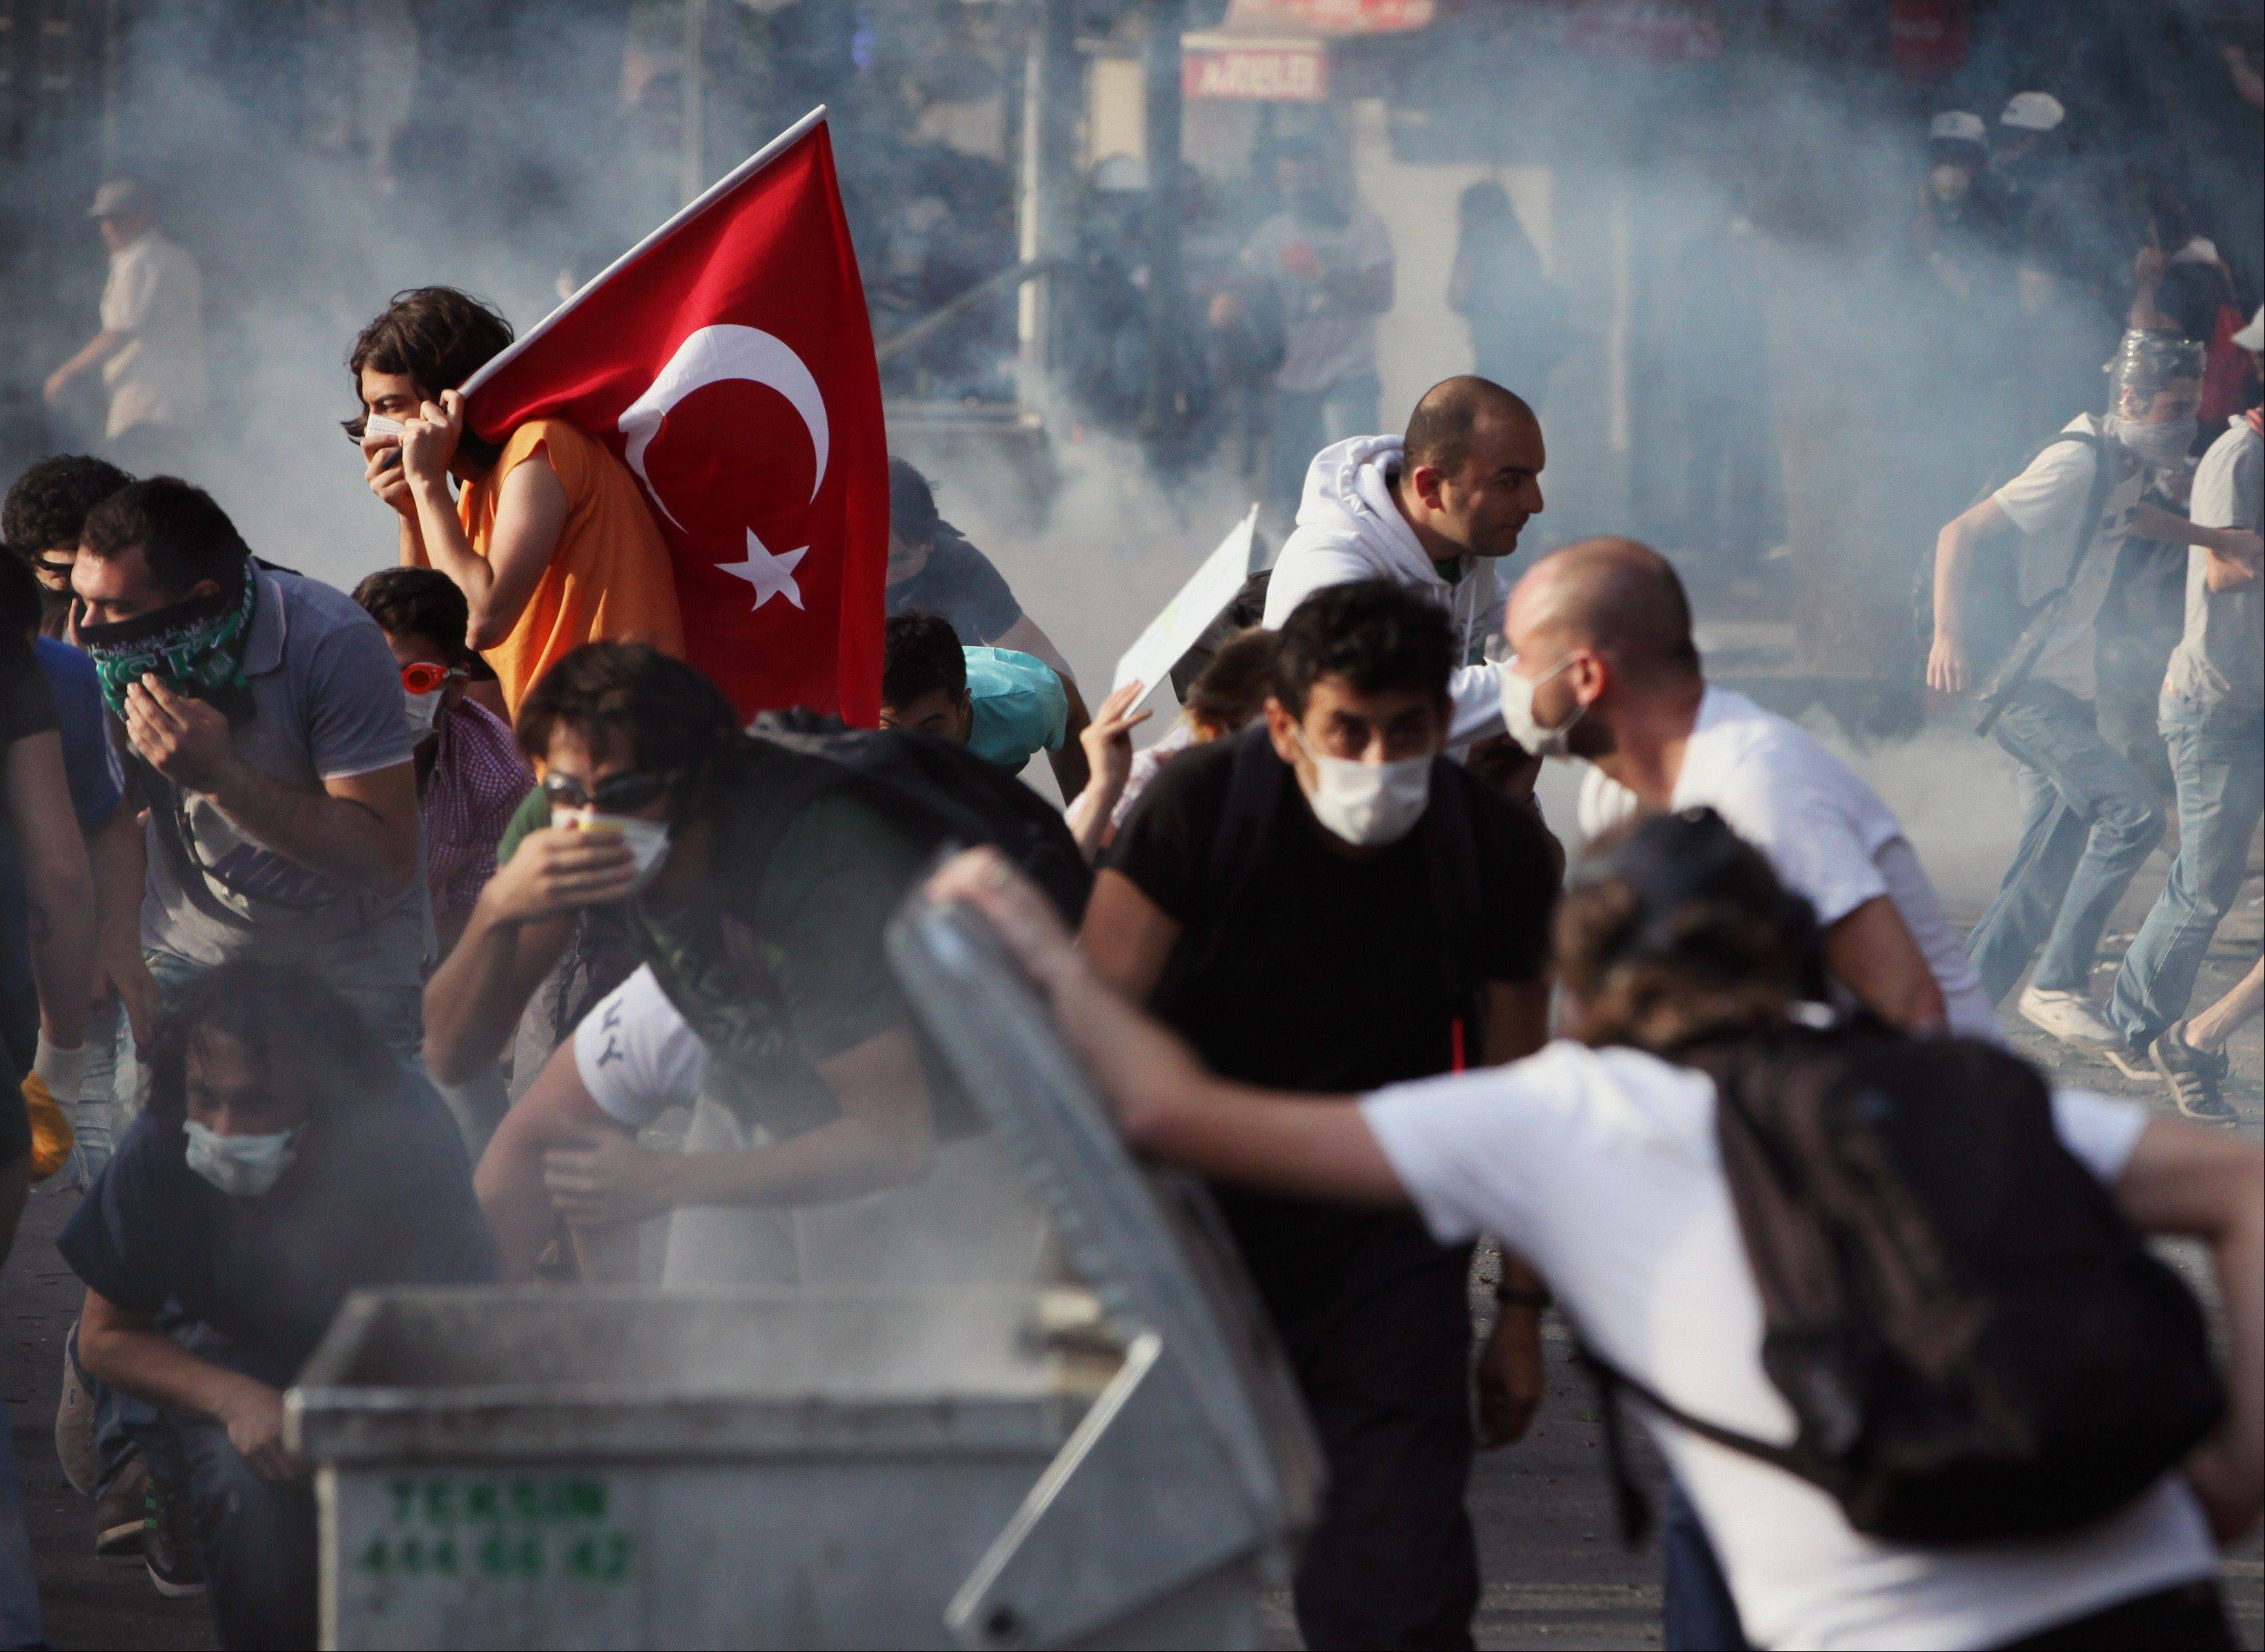 Young Turks clash with security forces in Ankara, Turkey, Sunday. The demonstrations grew out of anger over a violent police crackdown of a peaceful environmental protest at Istanbul's Taksim Square and spread to other Turkish cities.